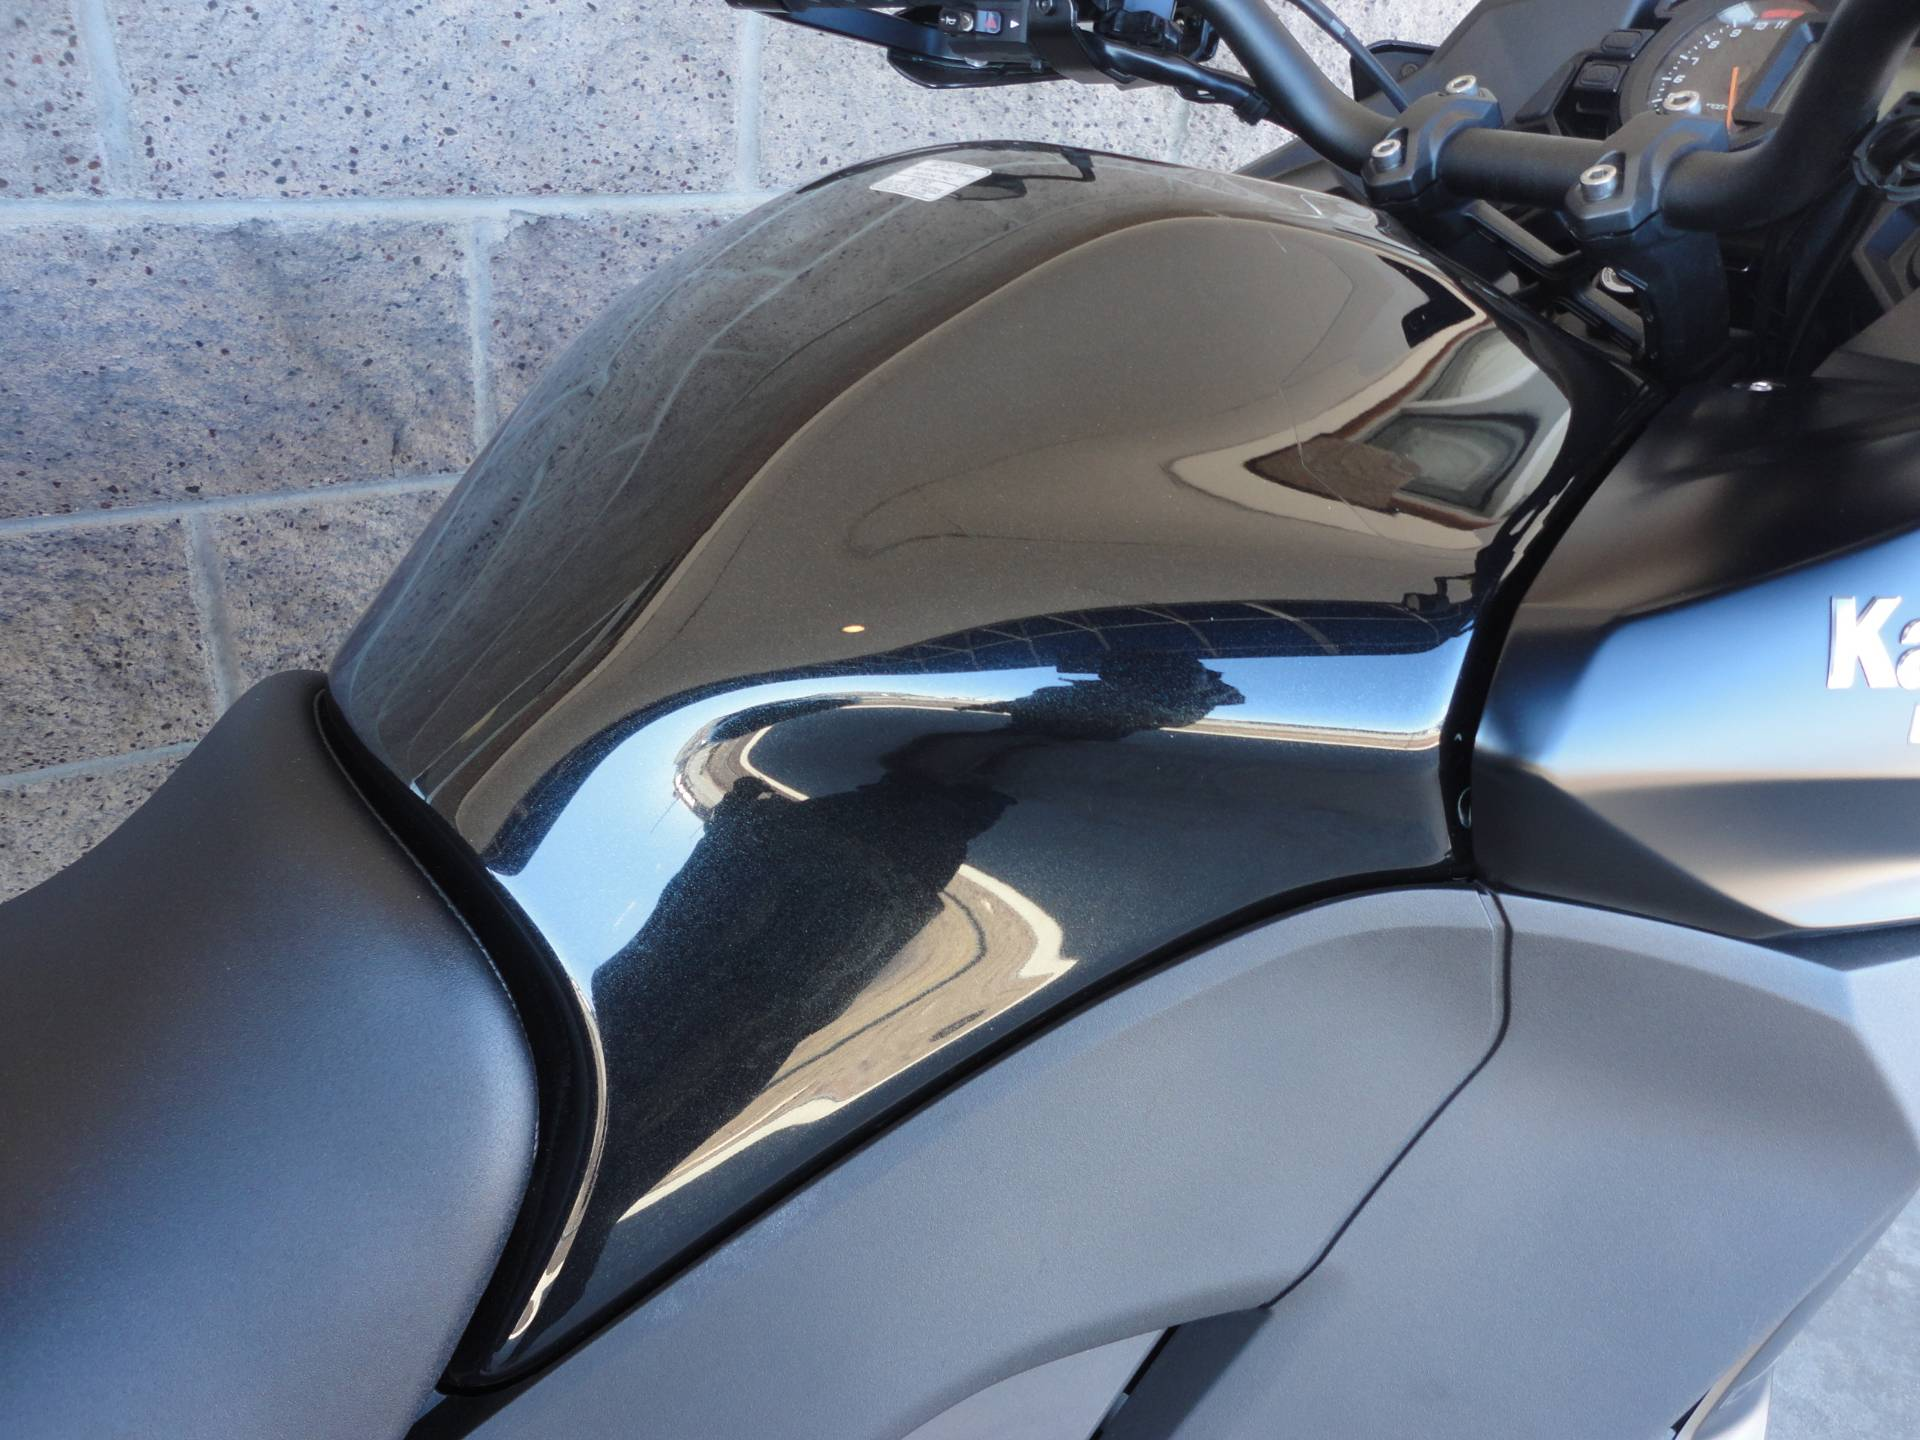 2015 Kawasaki Versys® 1000 LT in Denver, Colorado - Photo 25